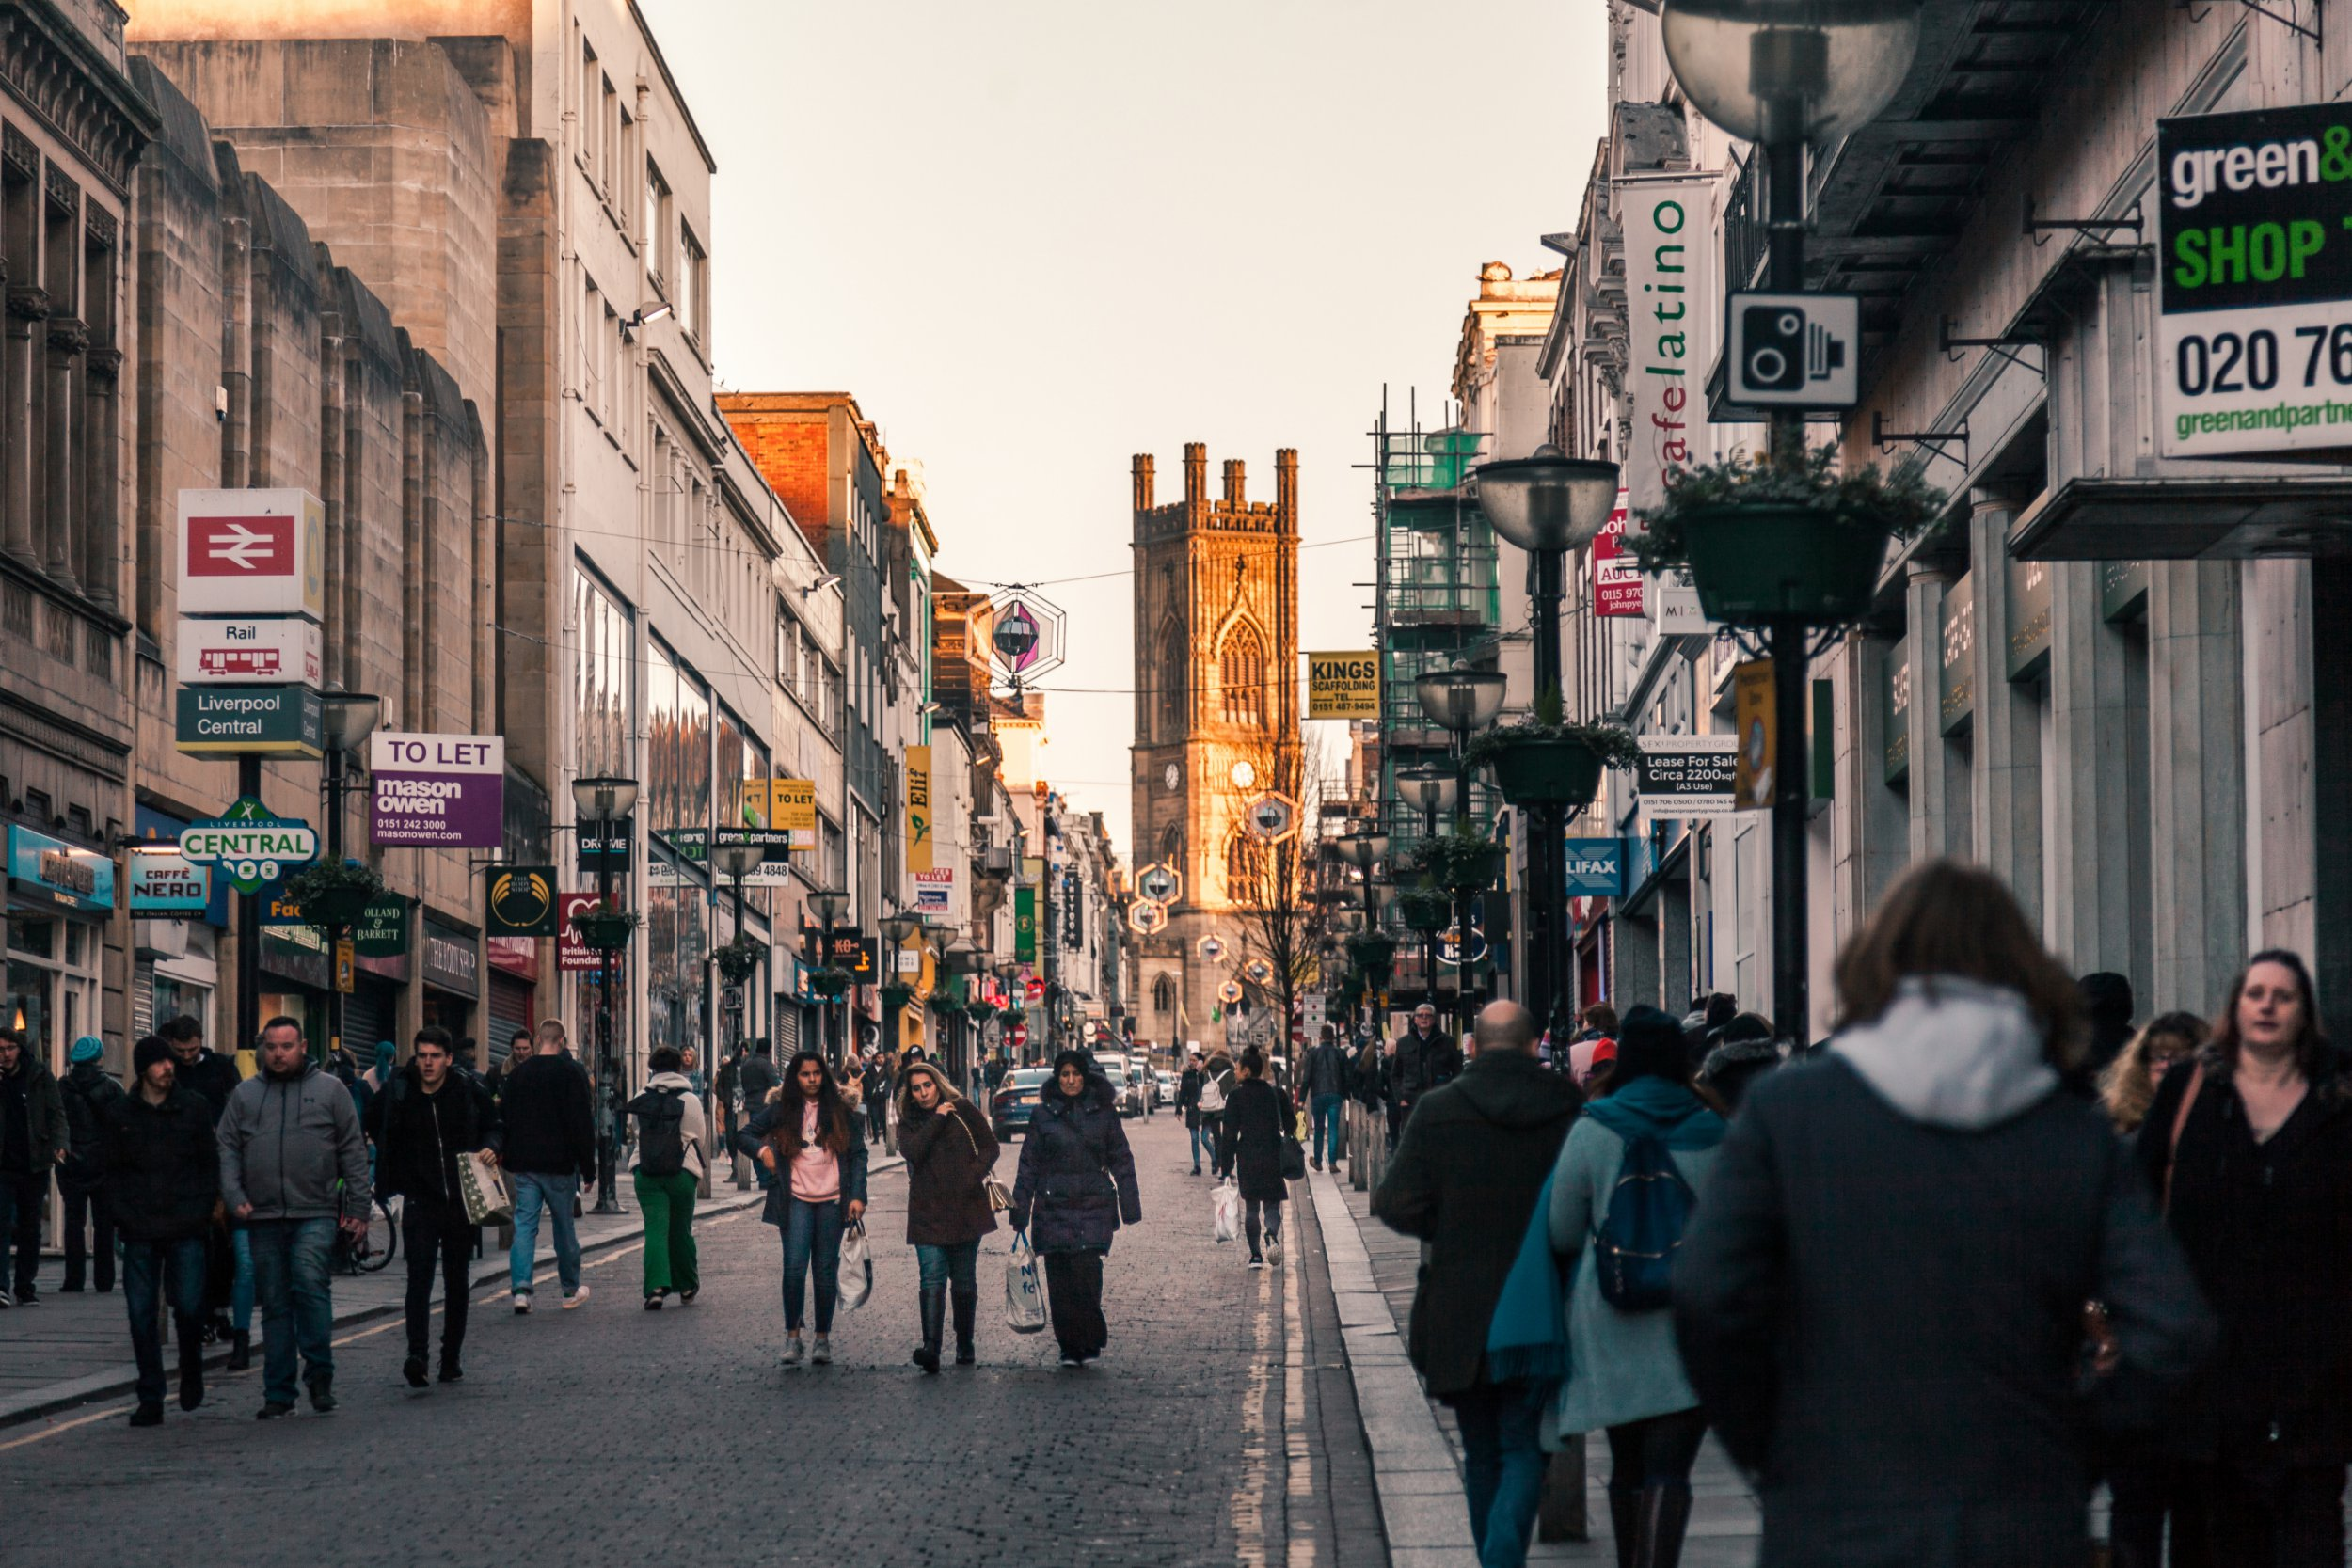 Liverpool, United Kingdom: February 25 2018 People shopping around Liverpool Central Street on a Sunny day. Bold Street located in the heart of Liverpool city, famously having small and large businesses.